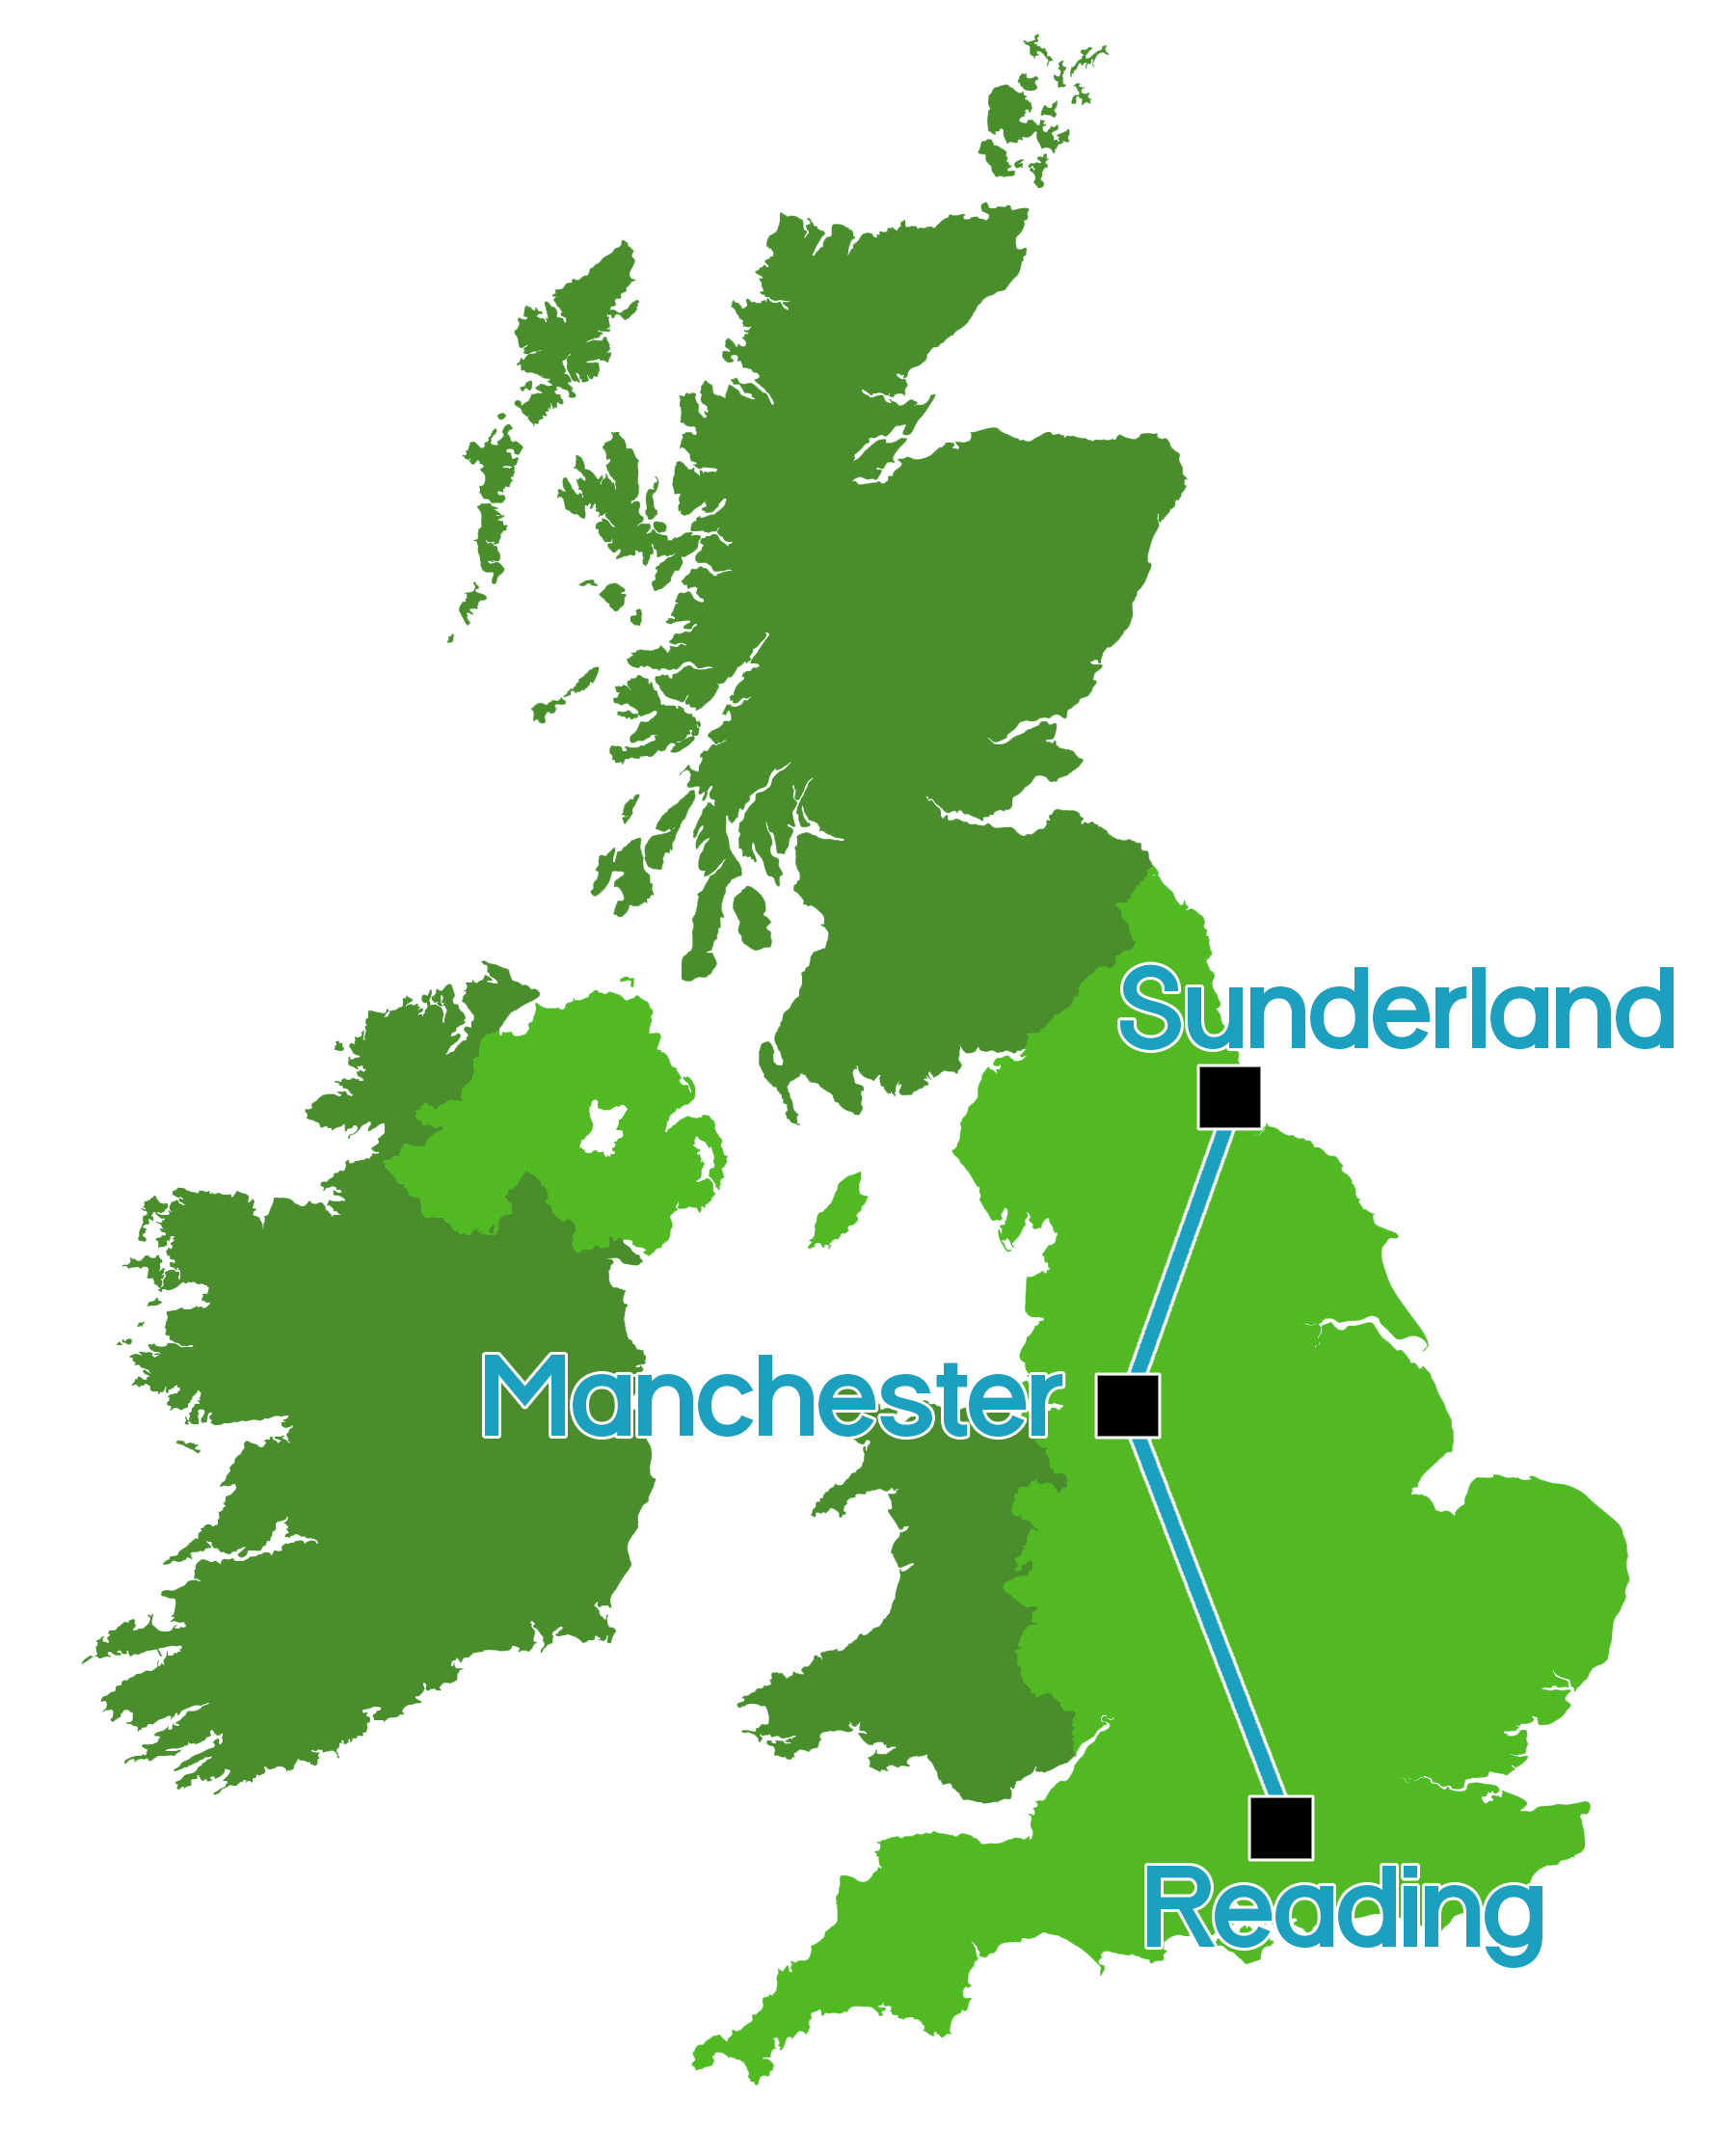 The Perfect Triangle - We've mapped out our locations in a coincidental, yet perfect triangle. This enables us to offer the best services we can to everyone!